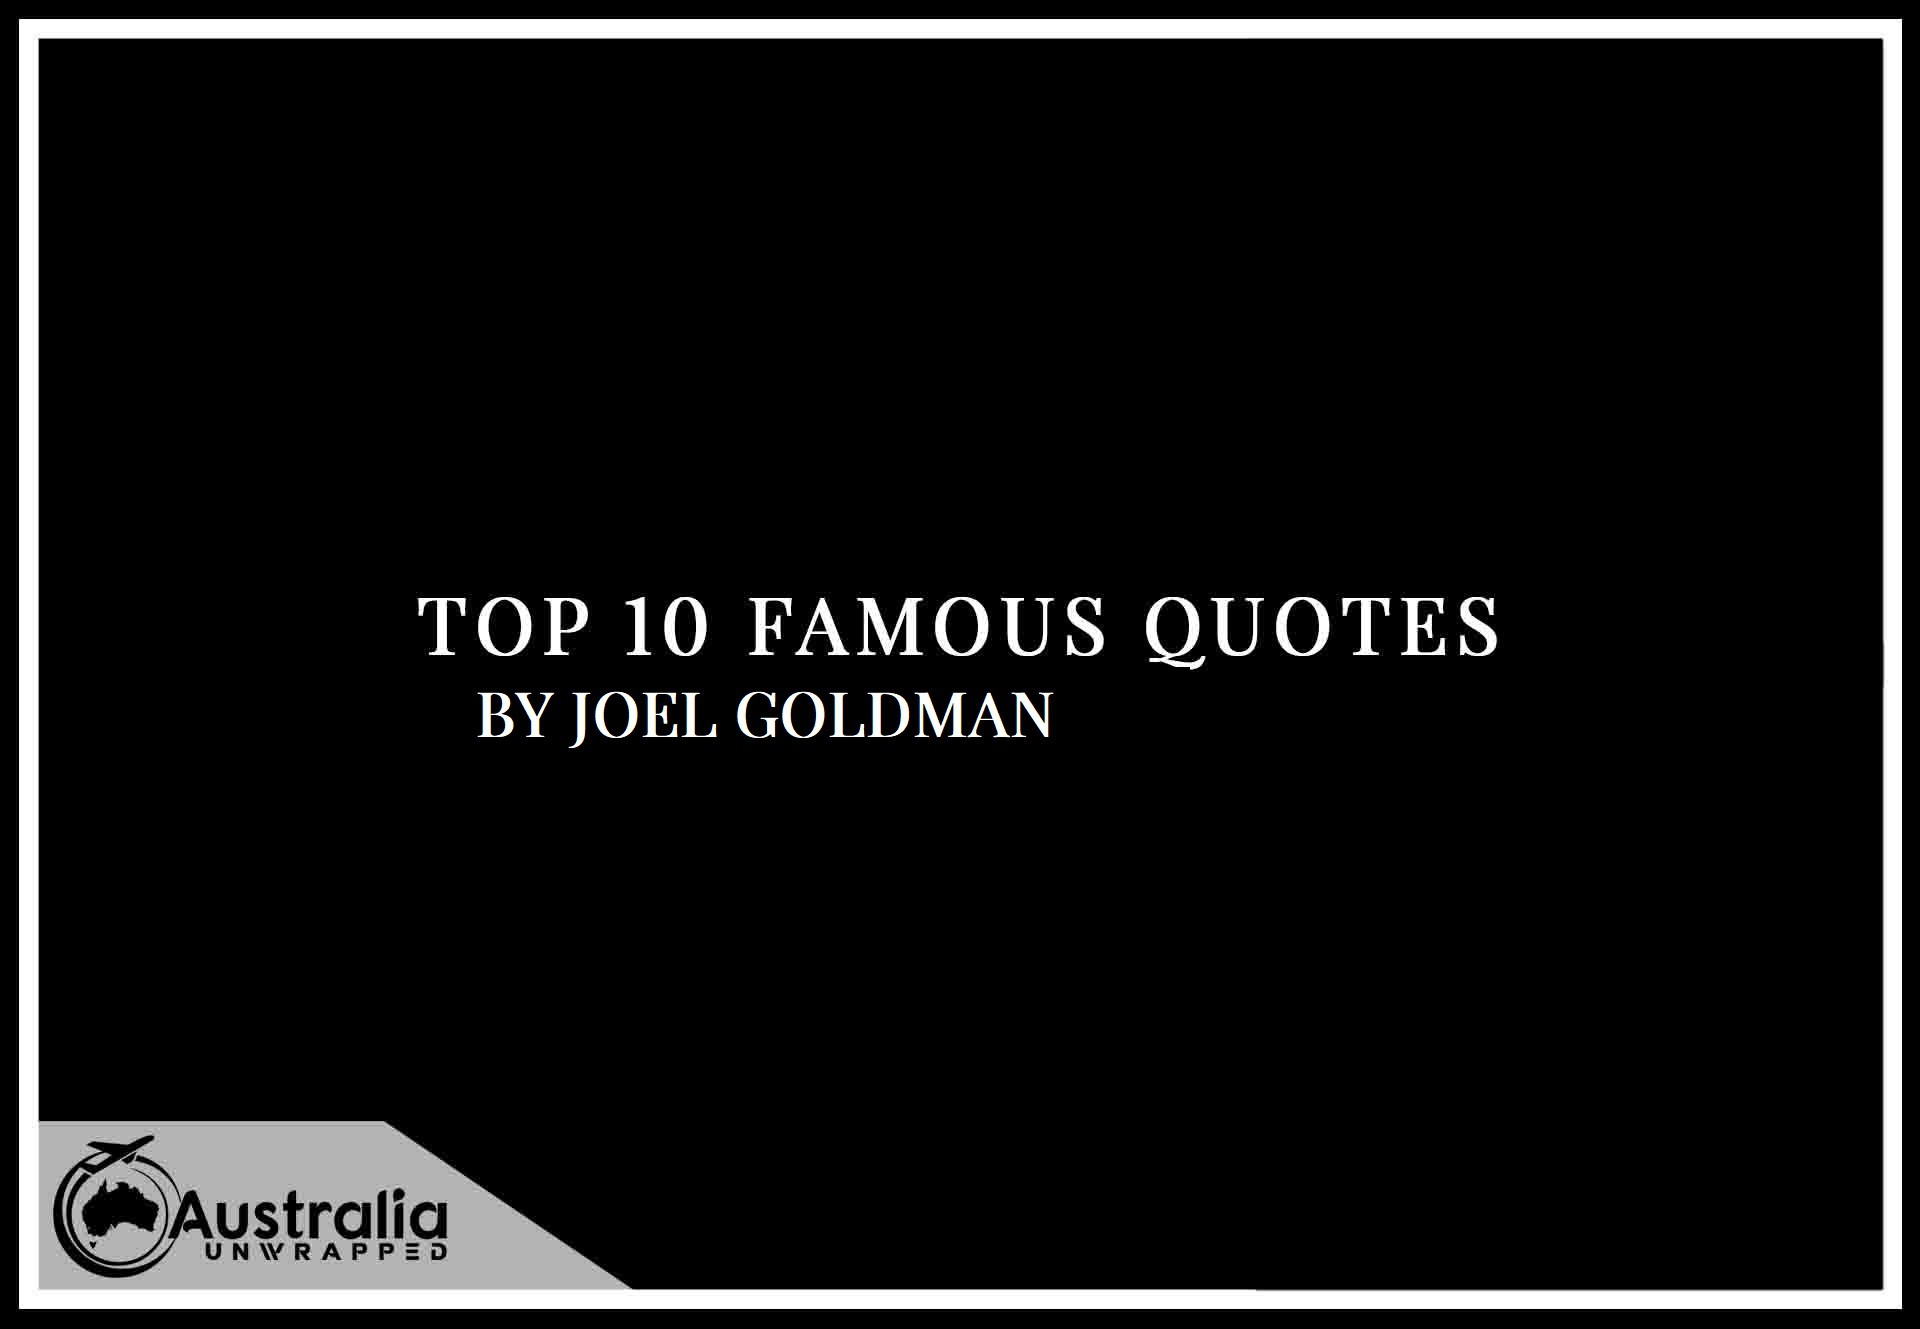 Top 10 Famous Quotes by Author Joel Goldman